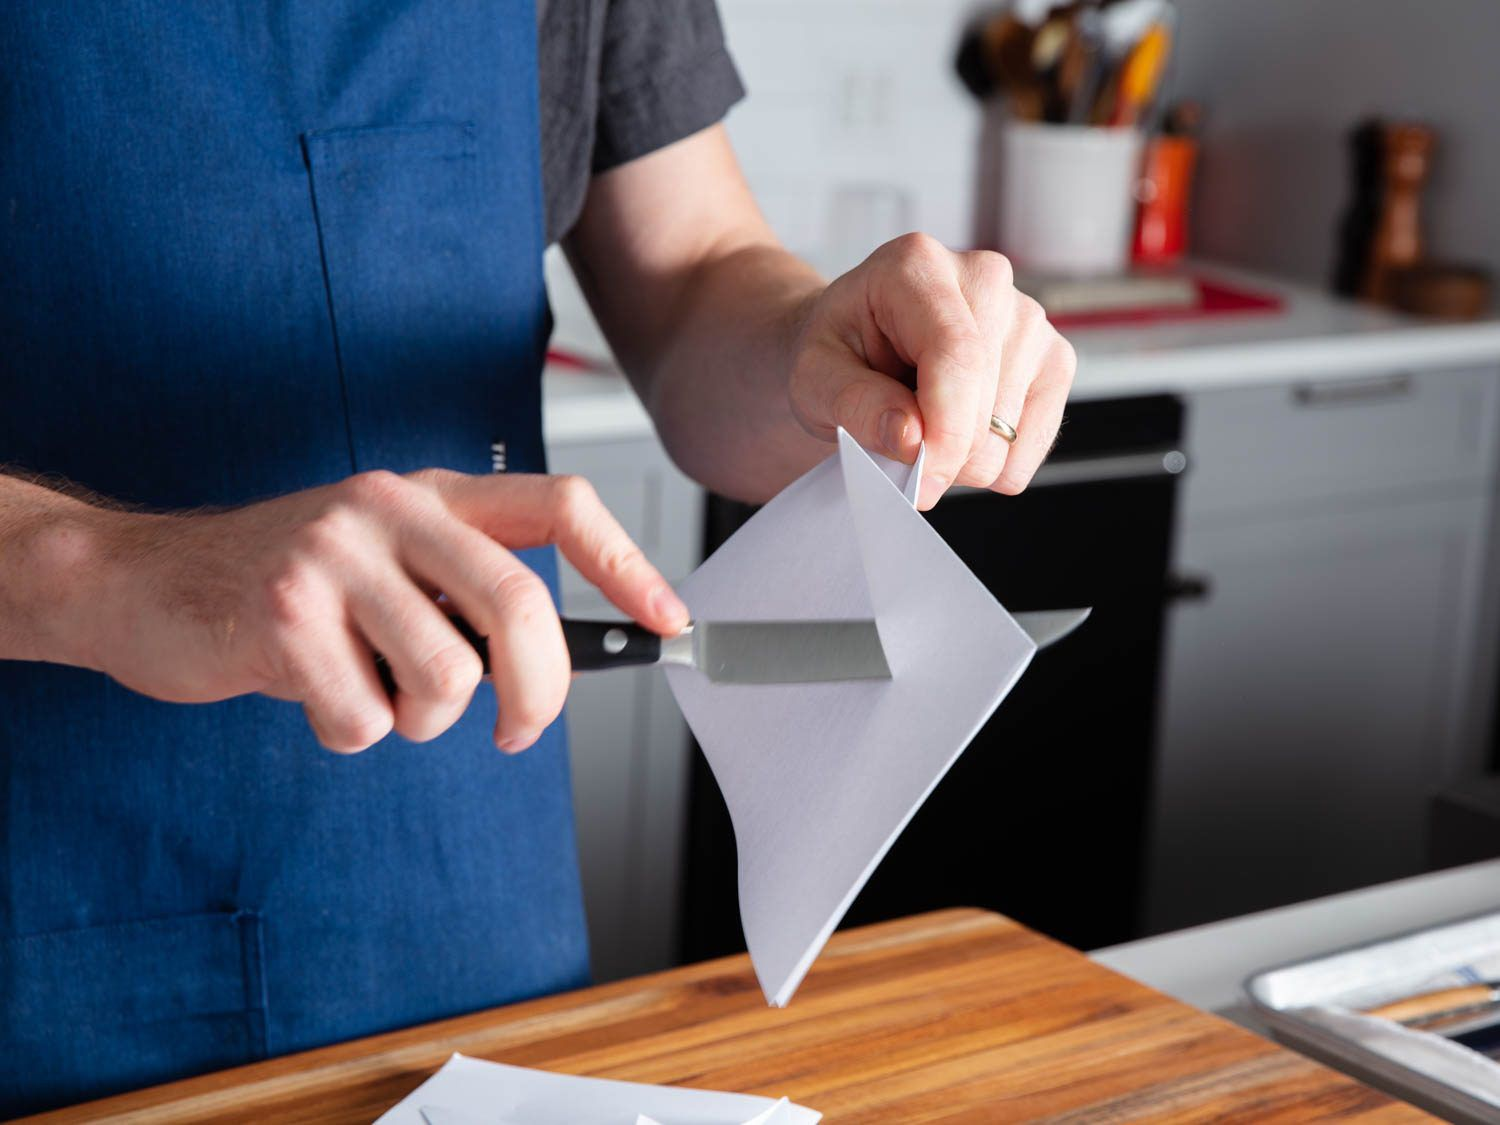 Cutting through a sheet of paper with a steak knife.